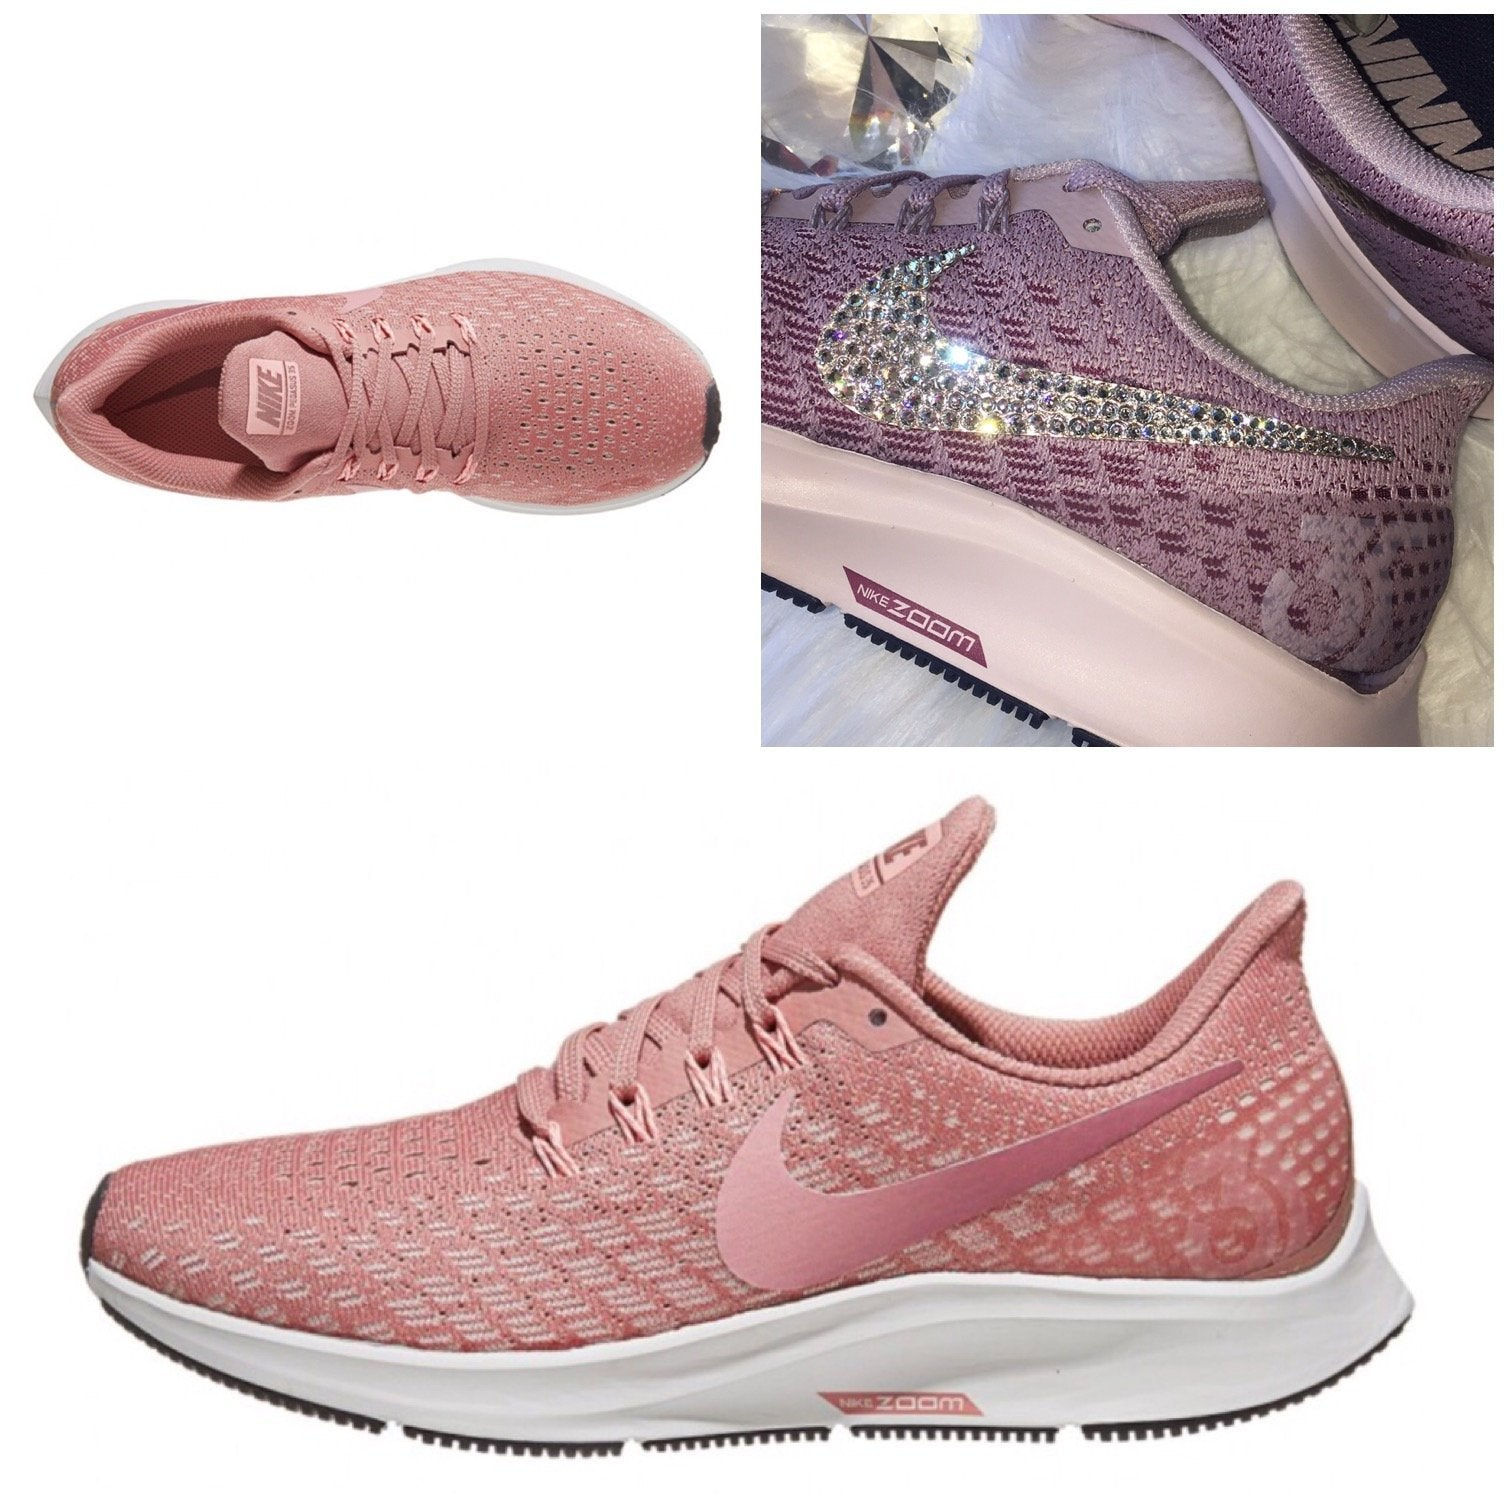 b46424015e2fc NEW Bling Nike Air Zoom Pegasus 35 Shoes with Swarovski Crystals * Rust Pink  ...